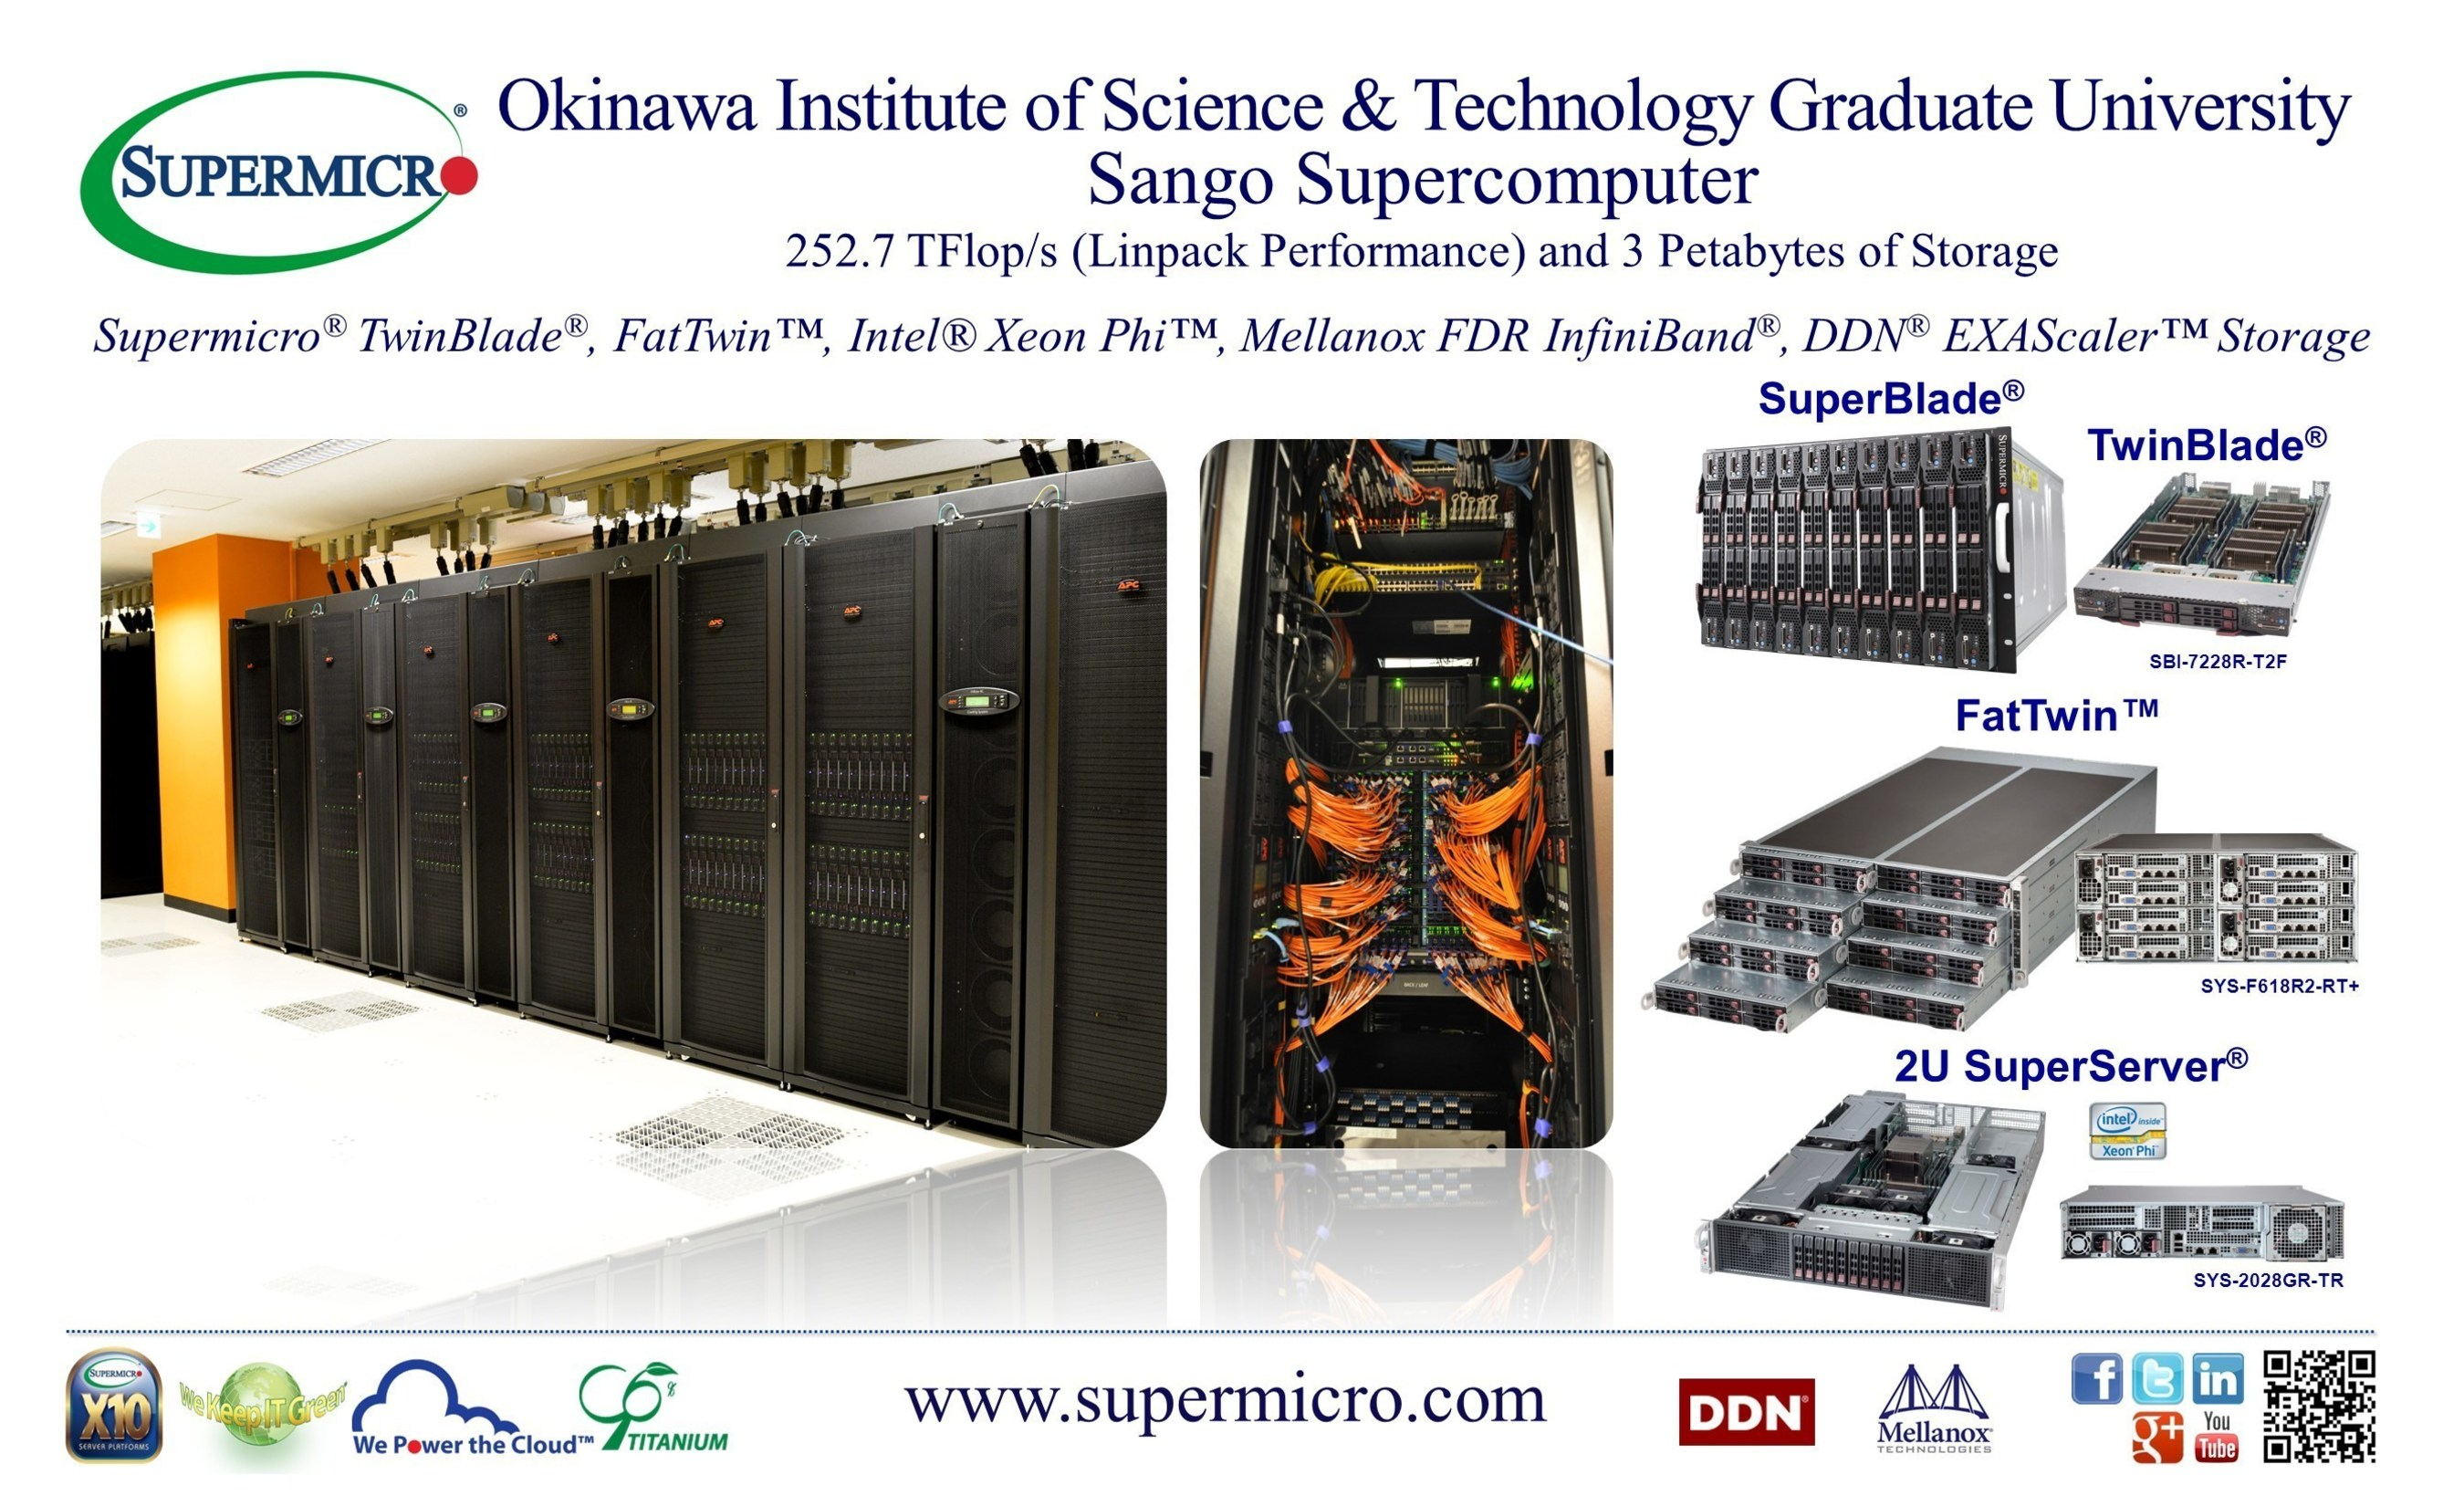 Okinawa Institute of Science and Technology Graduate